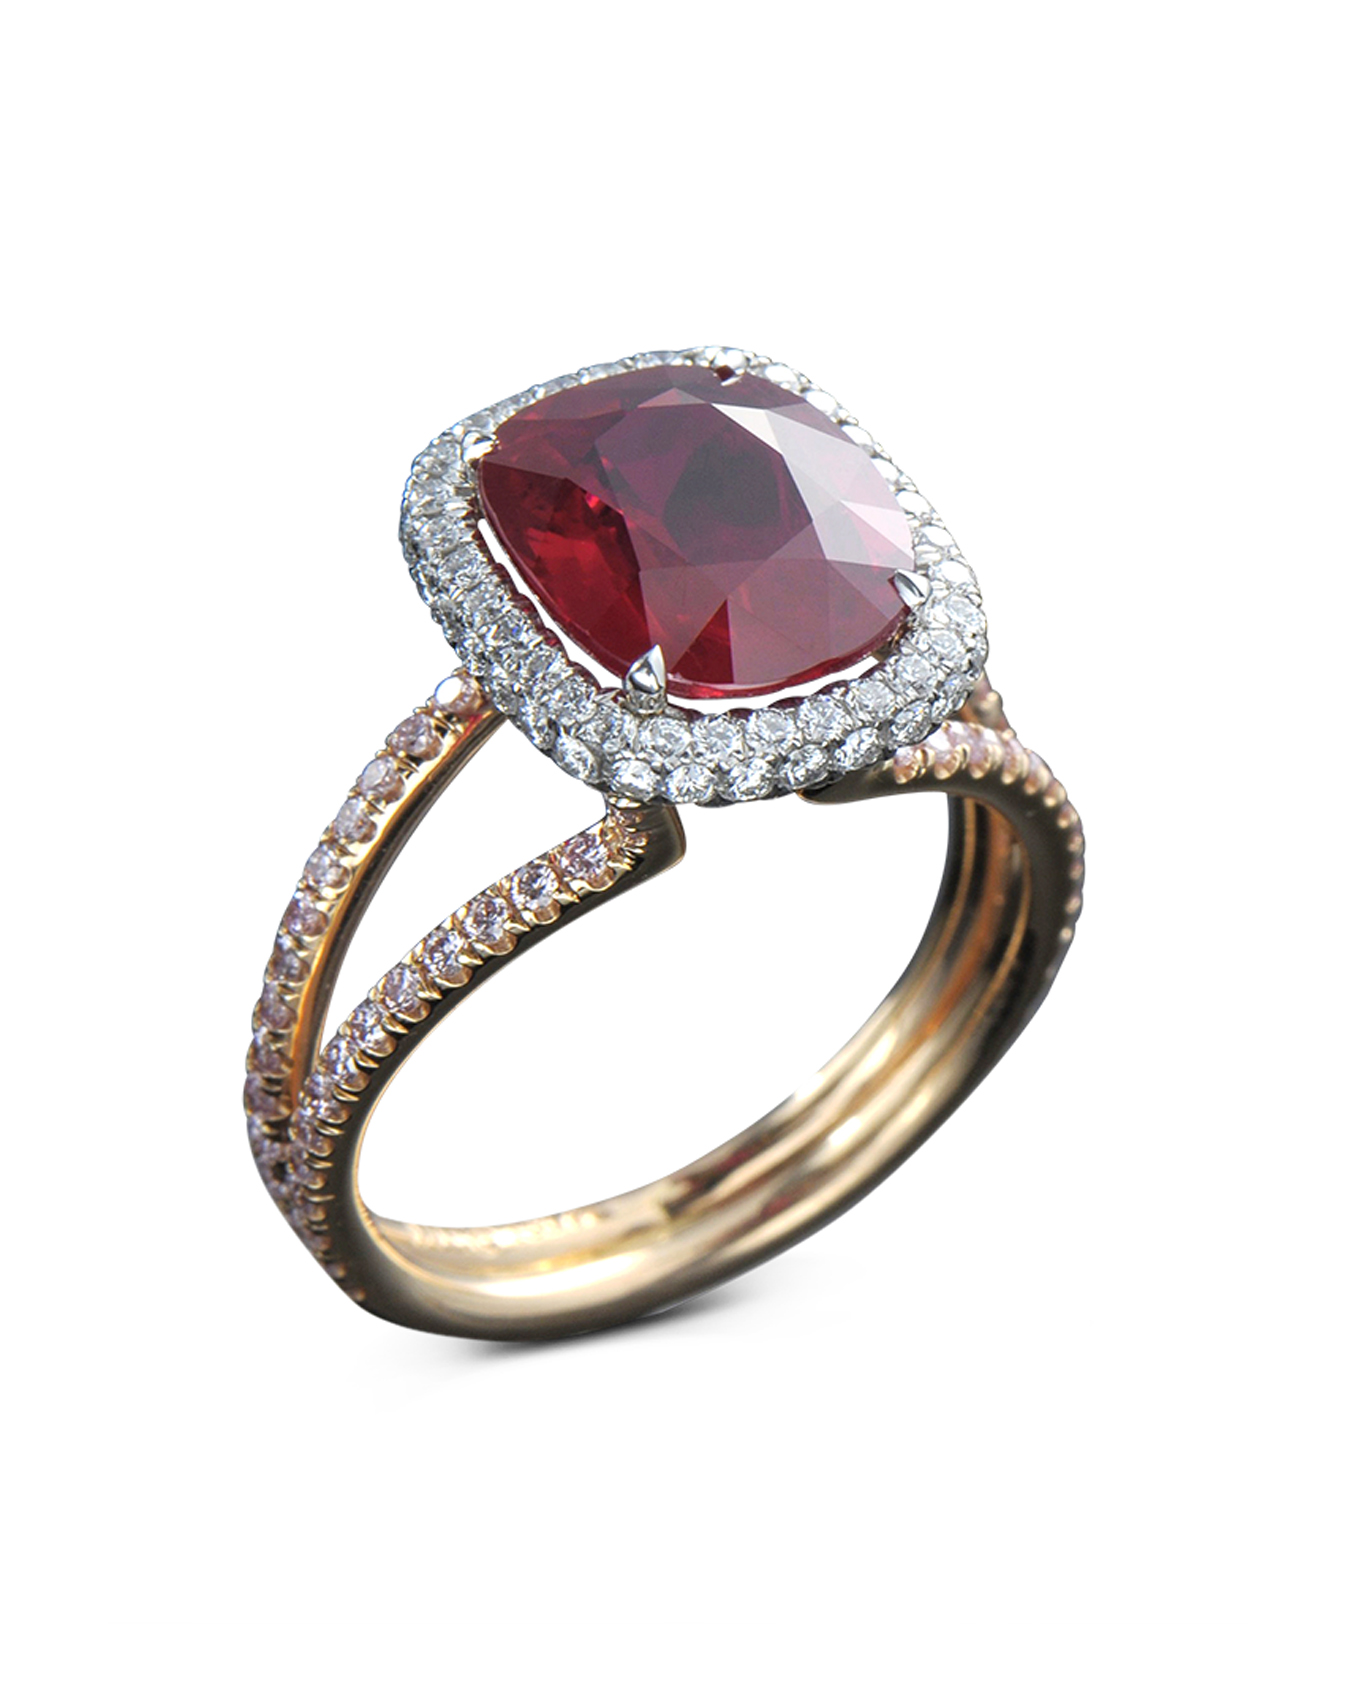 Custom Burma Ruby Ring: Burma Ruby And Diamond Ring